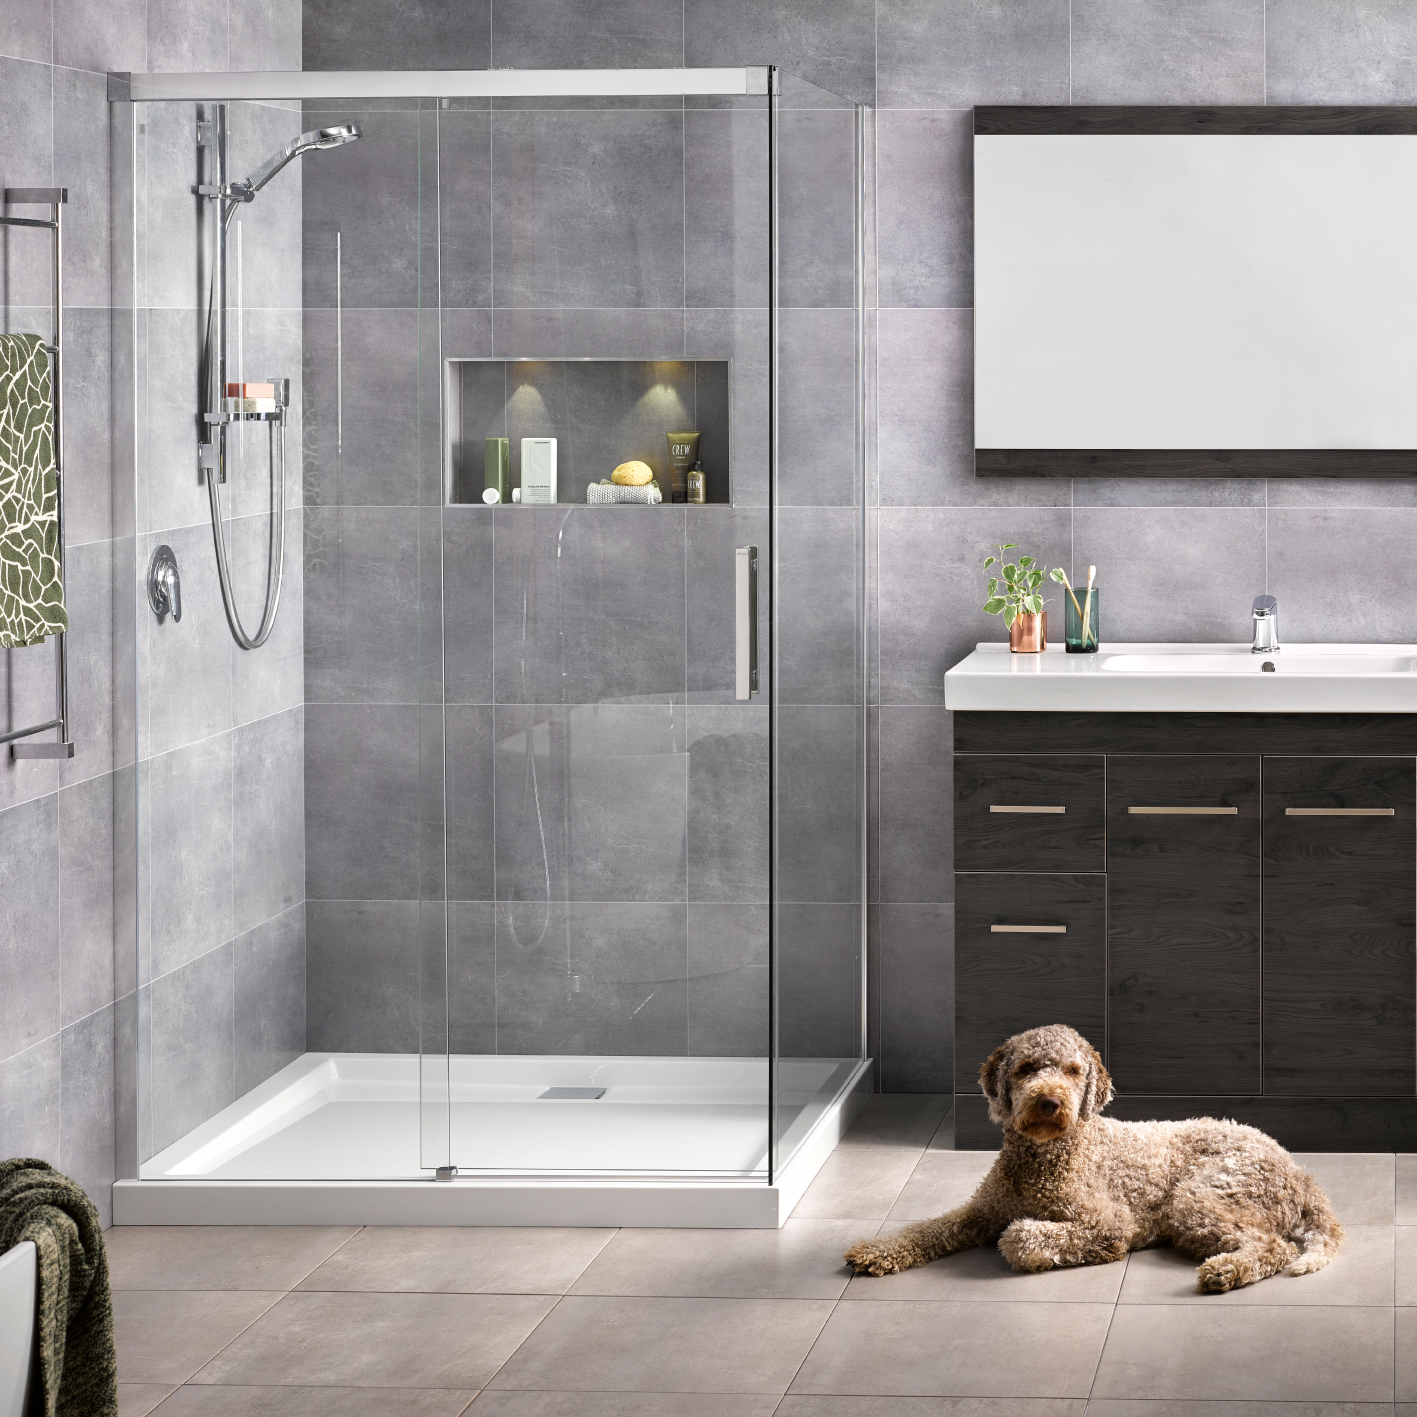 Motio 1200x1000 2 Sided Shower on Tiled Wall